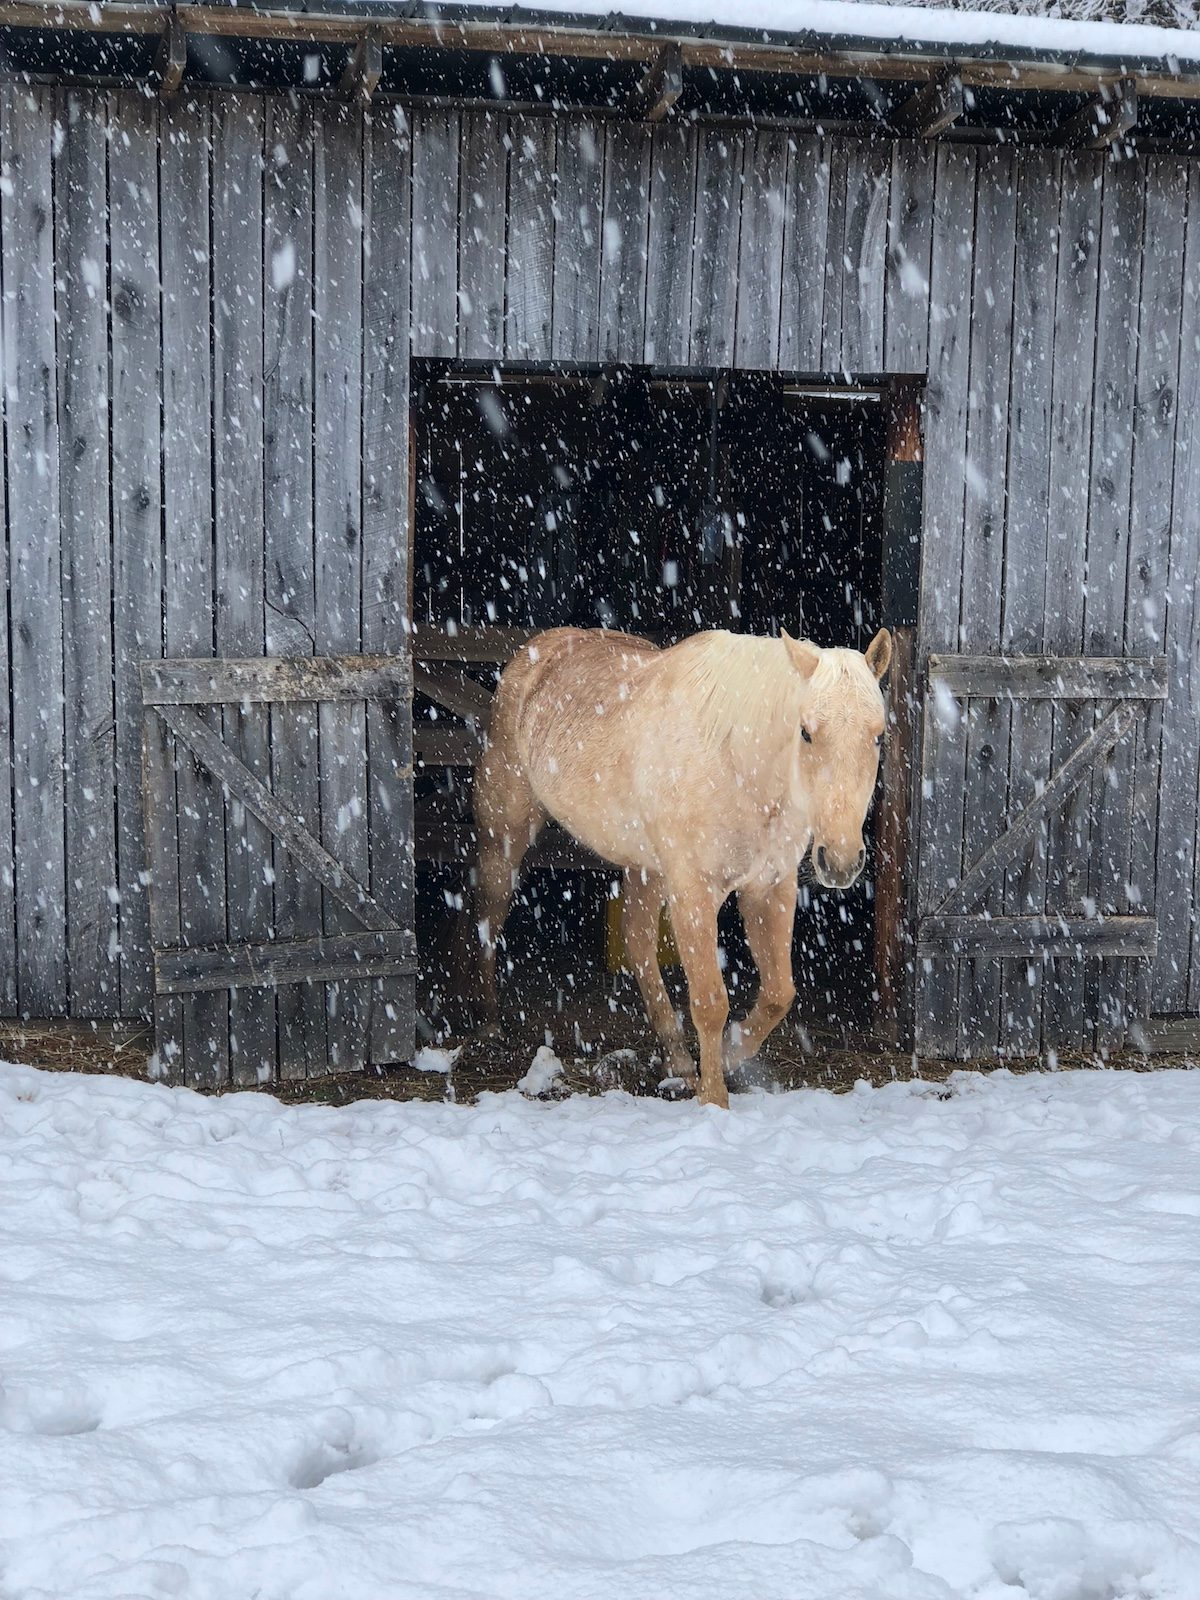 A Palomino horse trotting out of a red barn in the falling snow.